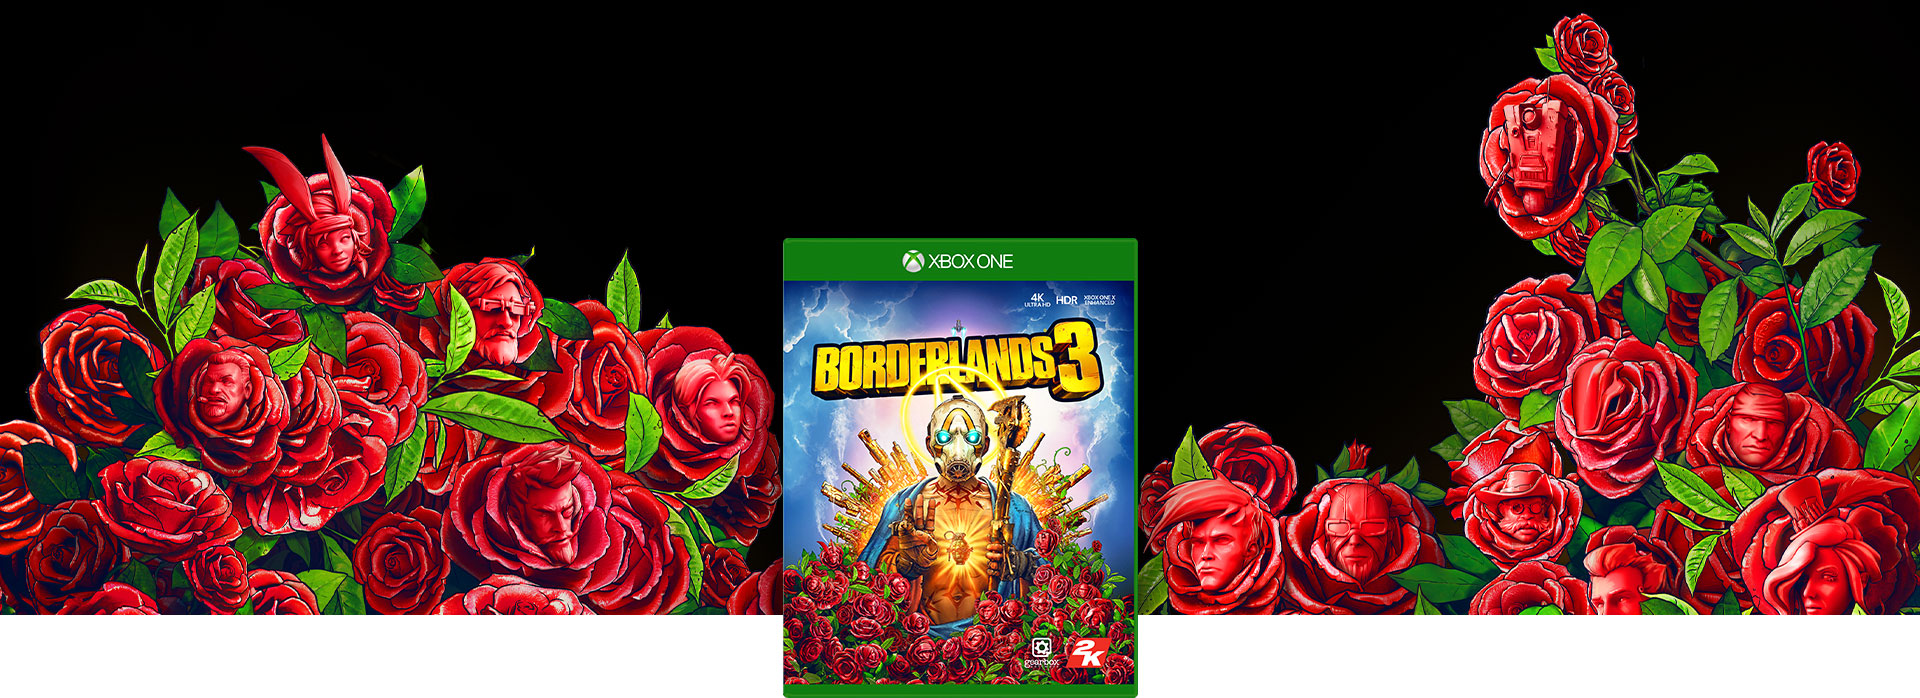 Borderlands 3 boxshot, background of roses with faces in them